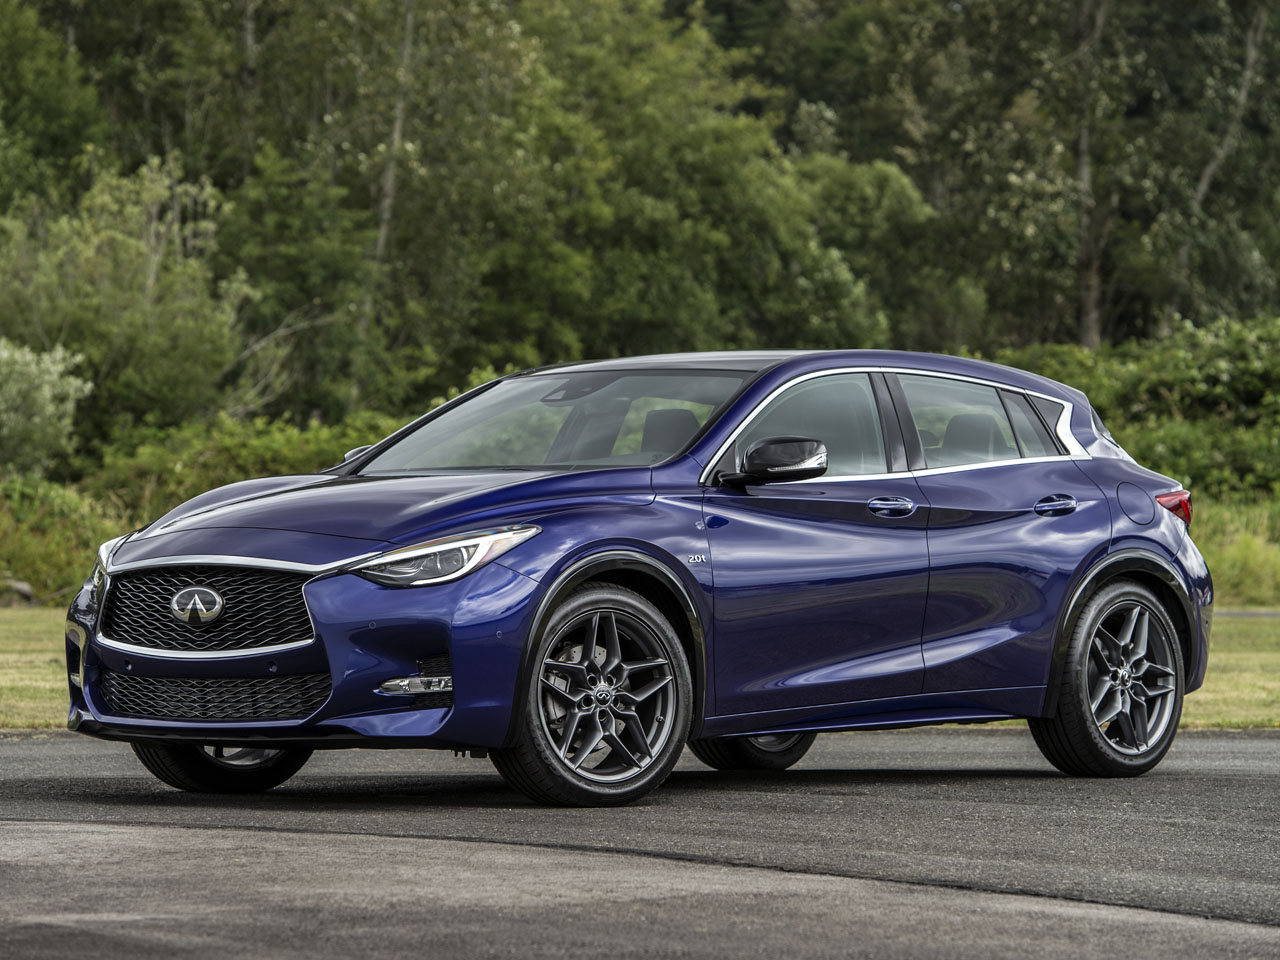 2017 Infiniti QX30 Road Test Review